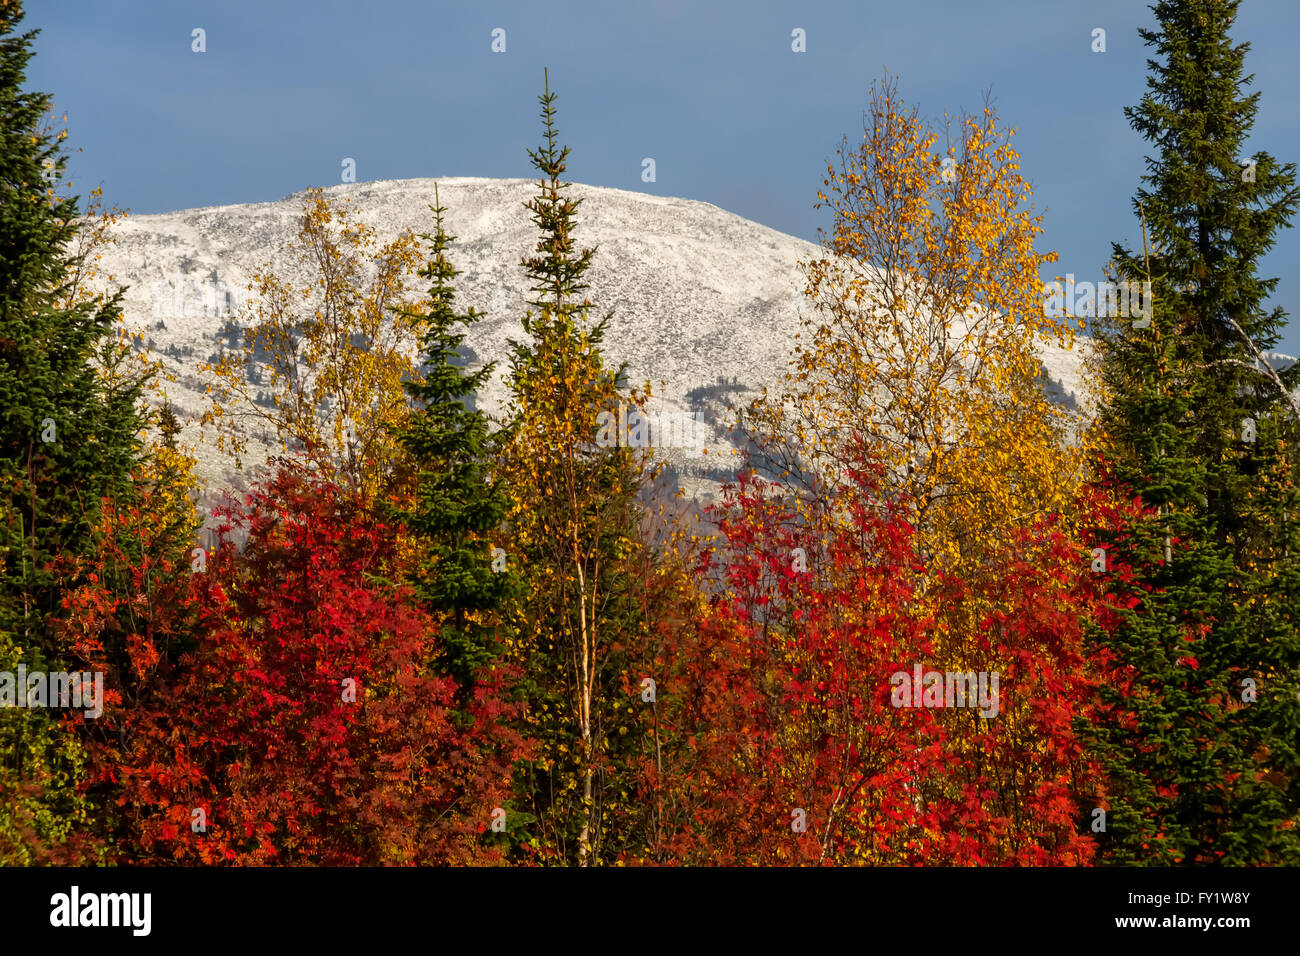 Autumn colored trees and mountain peak in first snow in Sheregesh, Siberia, Russia - Stock Image